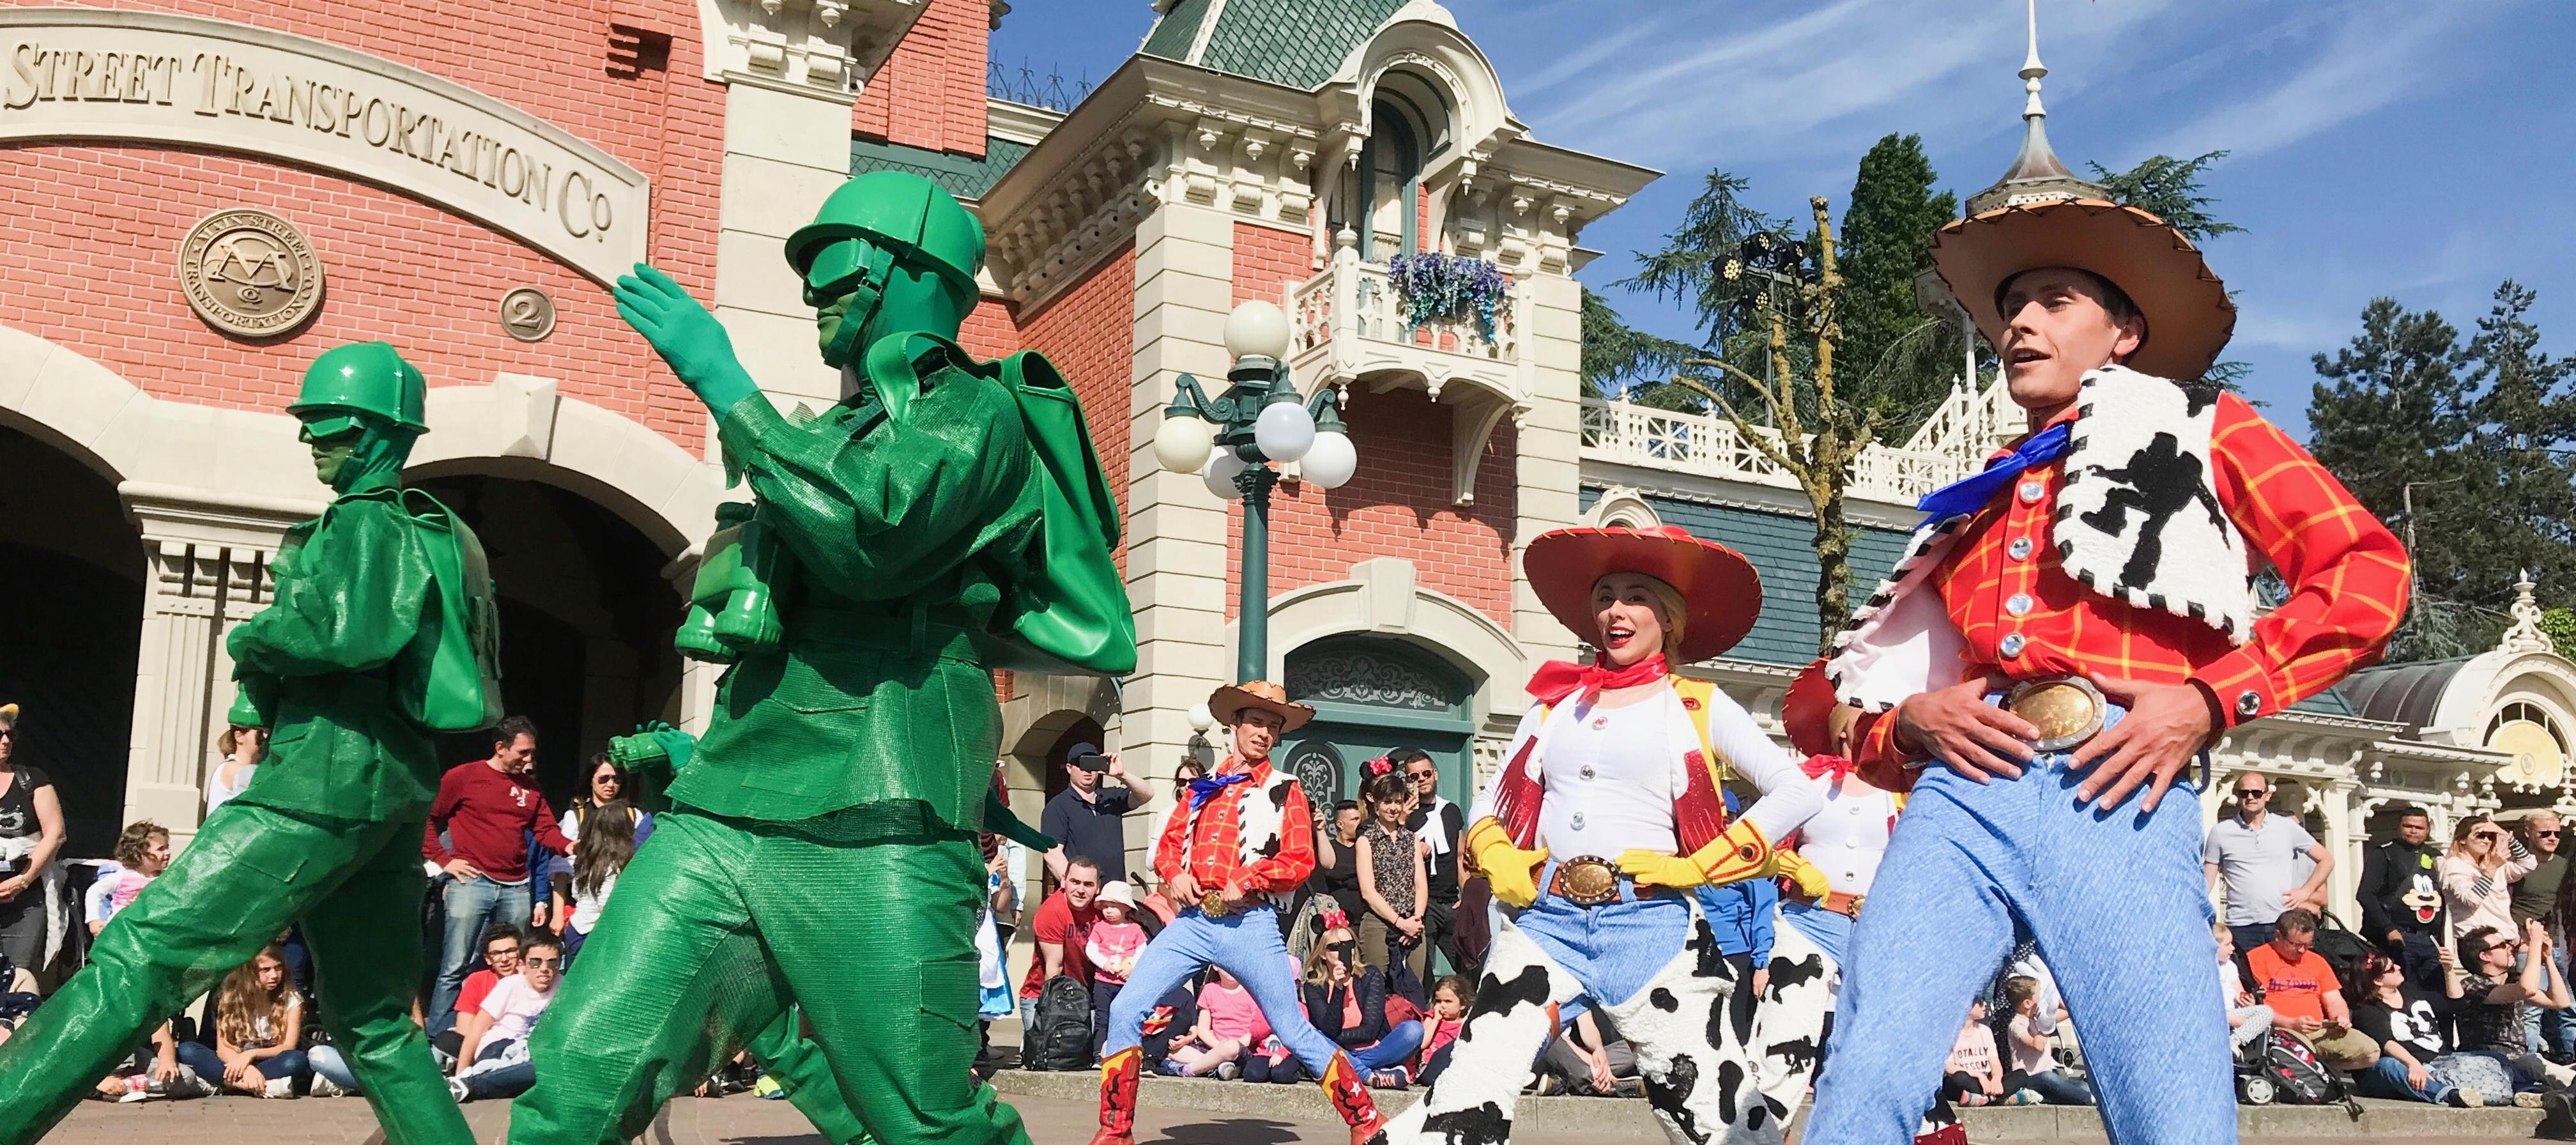 Toy Story Characters in the Character Parade in Disneyland Paris